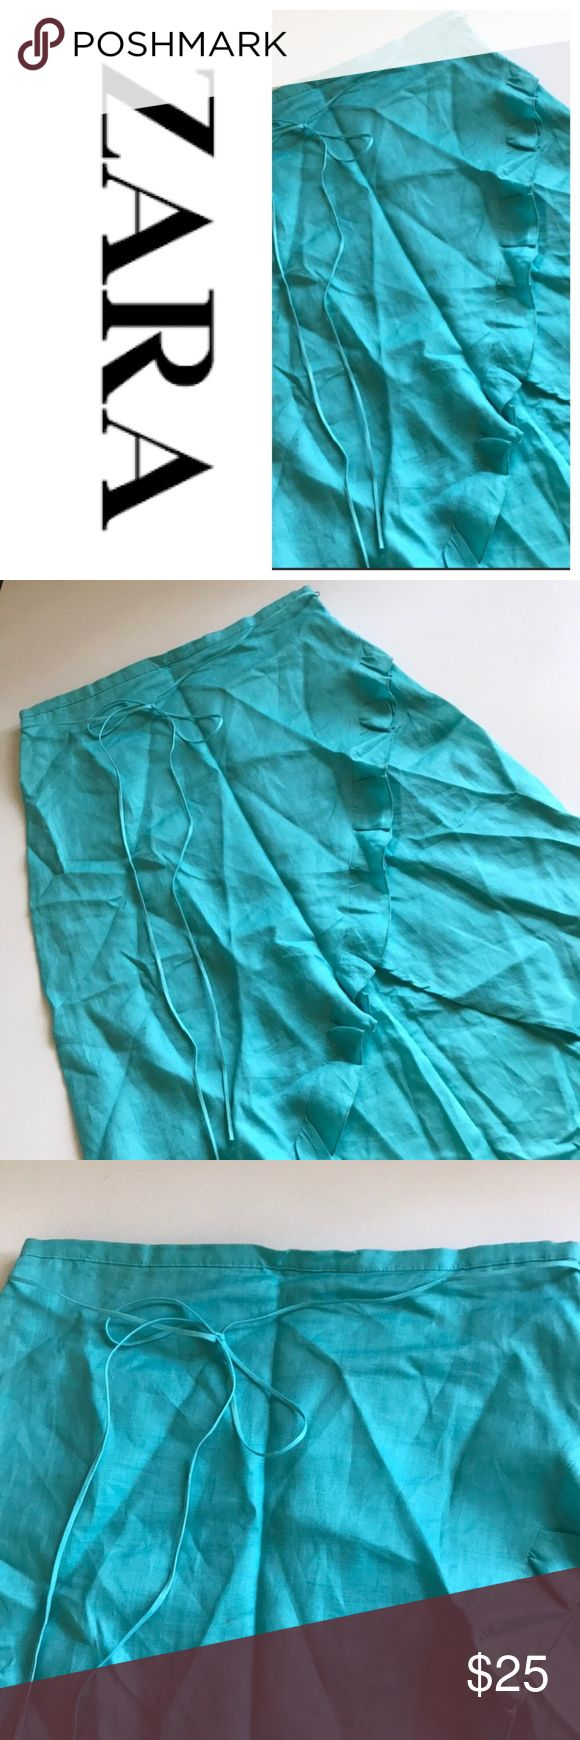 """NWOT Zara Teal Wrap Ruffle Skirt Sz M Brand: NWOT Zara   Color: Teal Blue  Style: Stunning A-line Skirt with side zip. Knee length. Mini tie belt. Front ruffle Scallop slit opening. Plain back. *Tiny flaw show in last pic  Materials: 100% Ramie (feels like linen)  Size: Medium  Waist: 15.5"""" Hips: 22"""" Length: 28""""  🍍🍍🍍 NWOT New without Tags. Bundle & Save with my Other Listings! Zara Skirts High Low"""